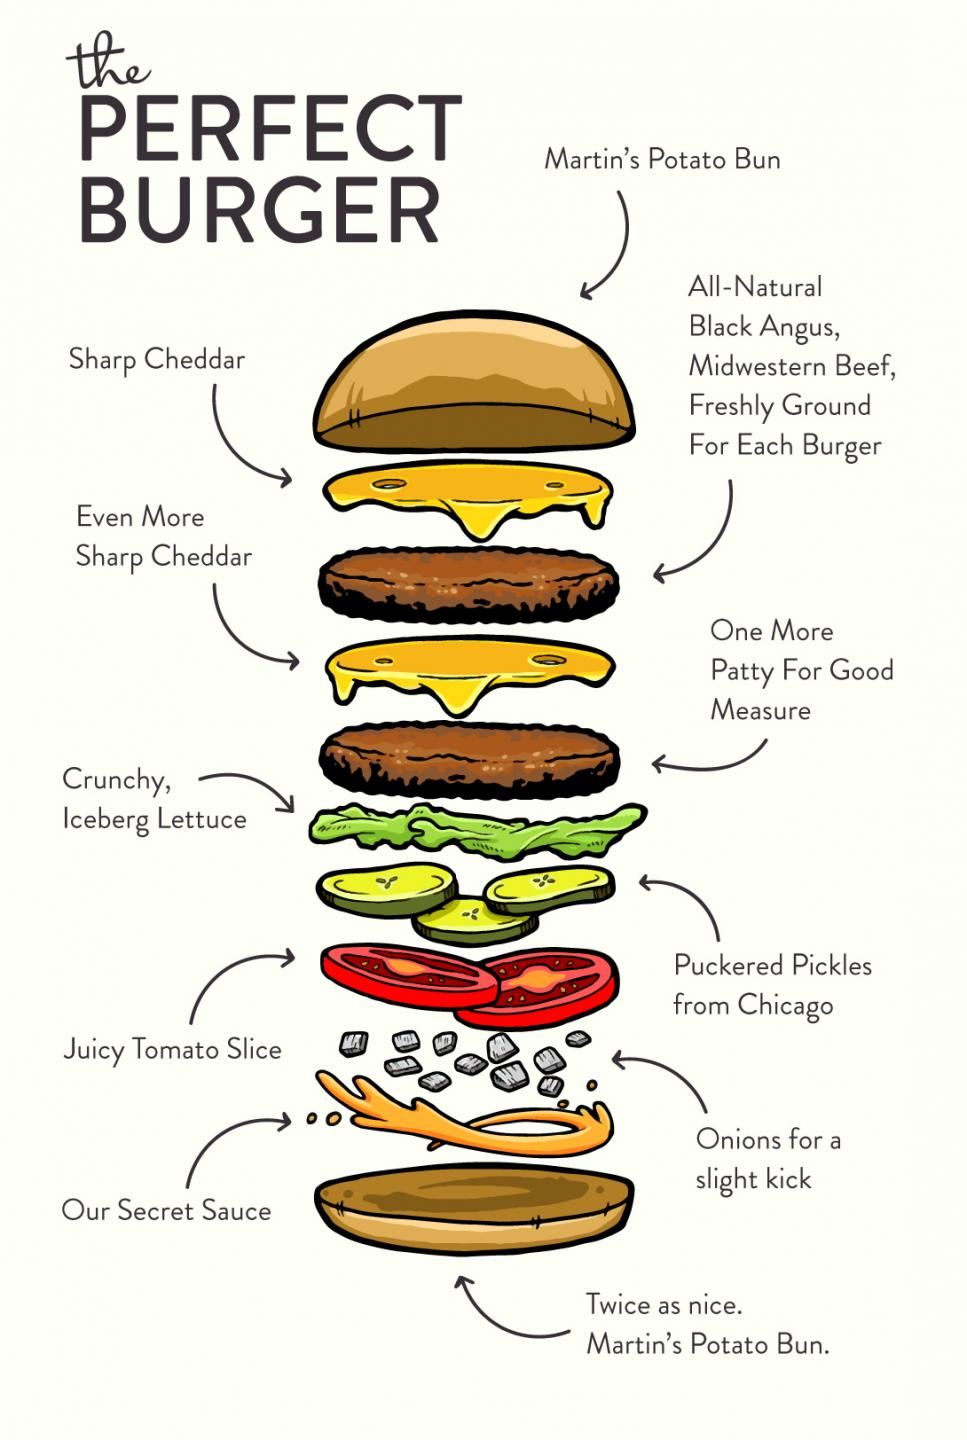 a burger broken down by layers